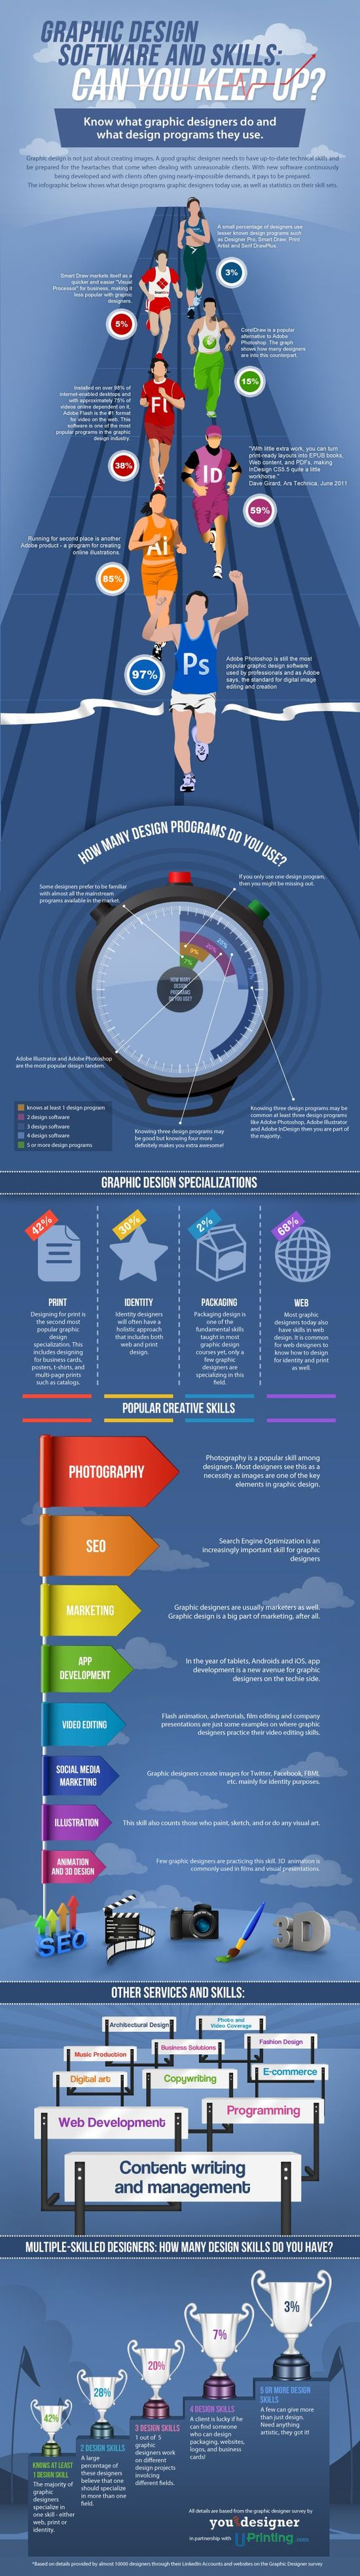 I love infographics. I especially love infographics about graphic design.